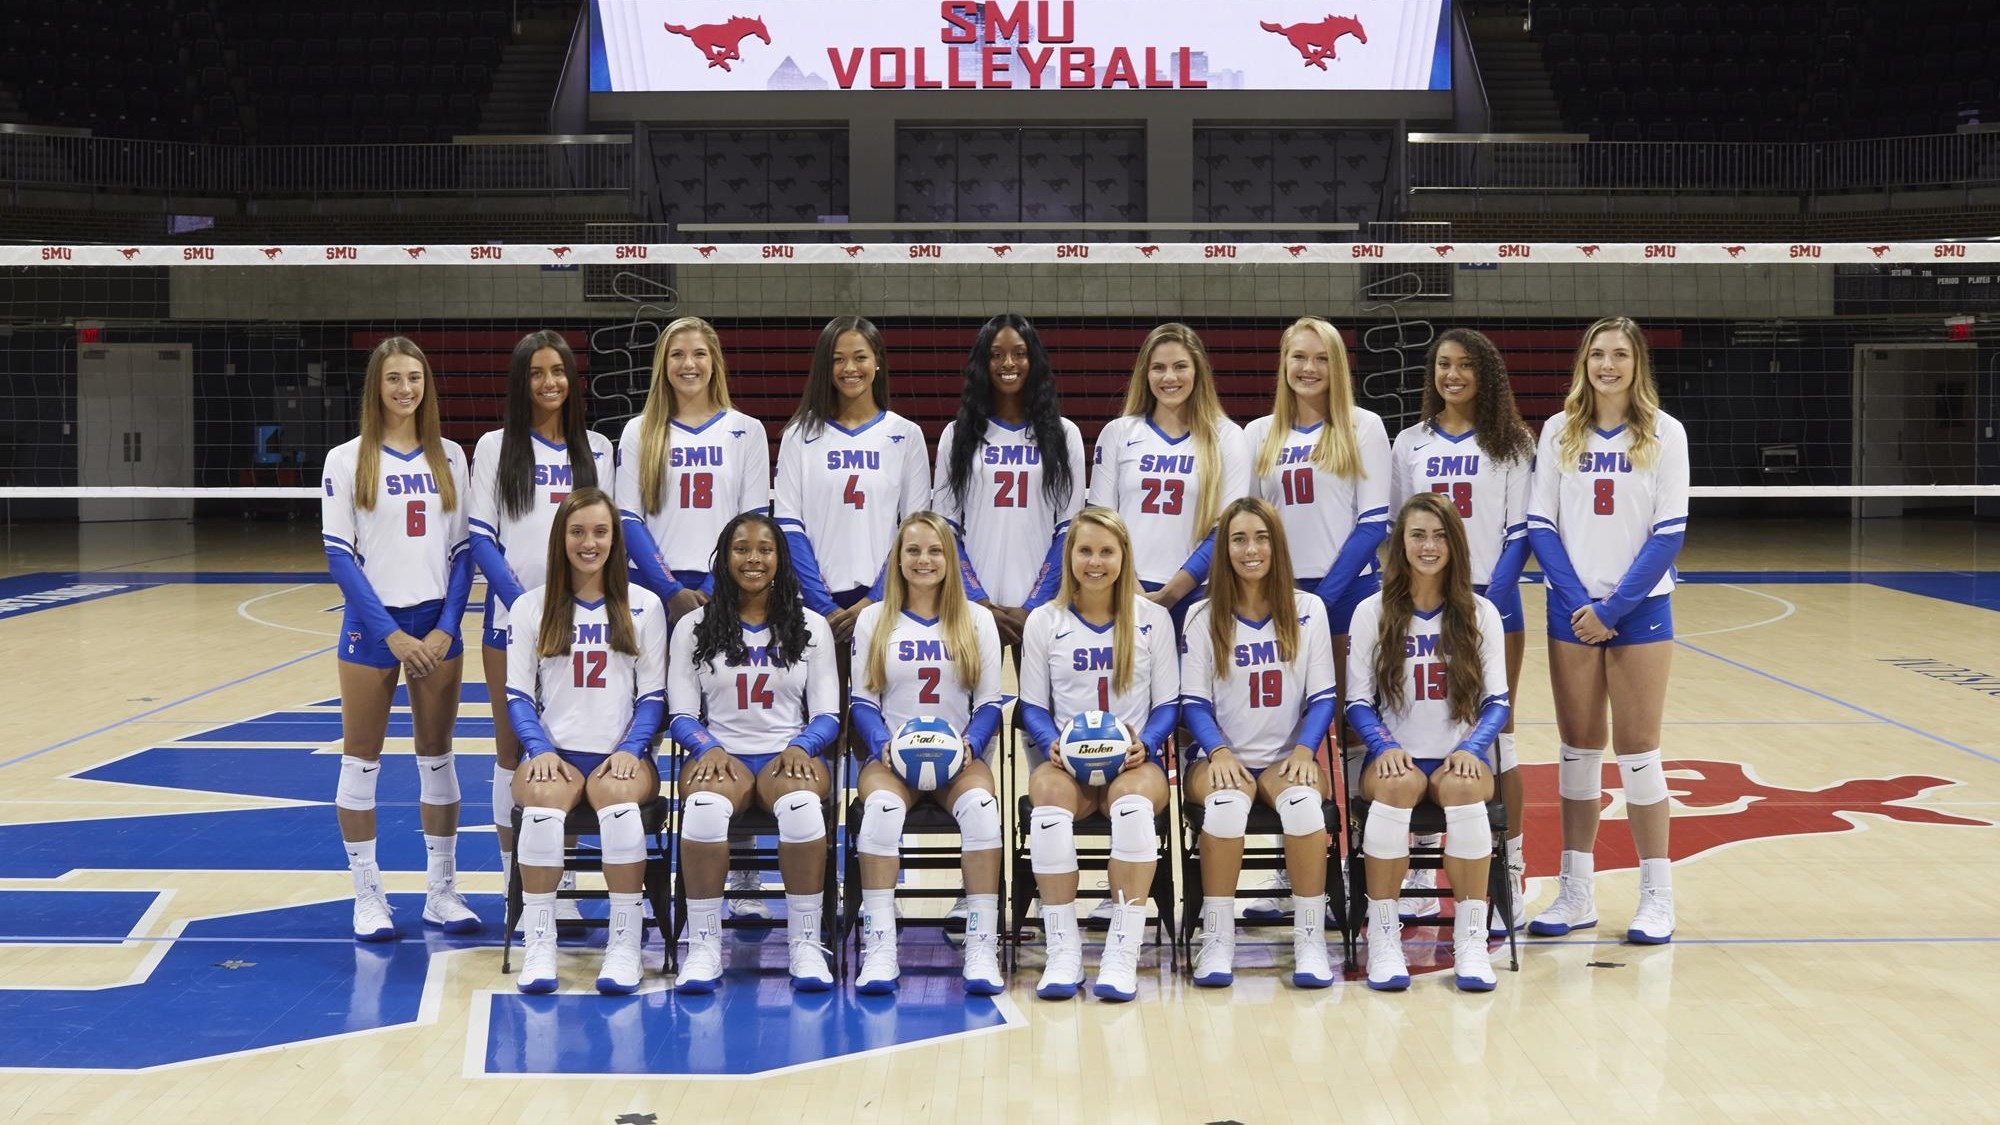 Bria Merchant Volleyball Smu Athletics